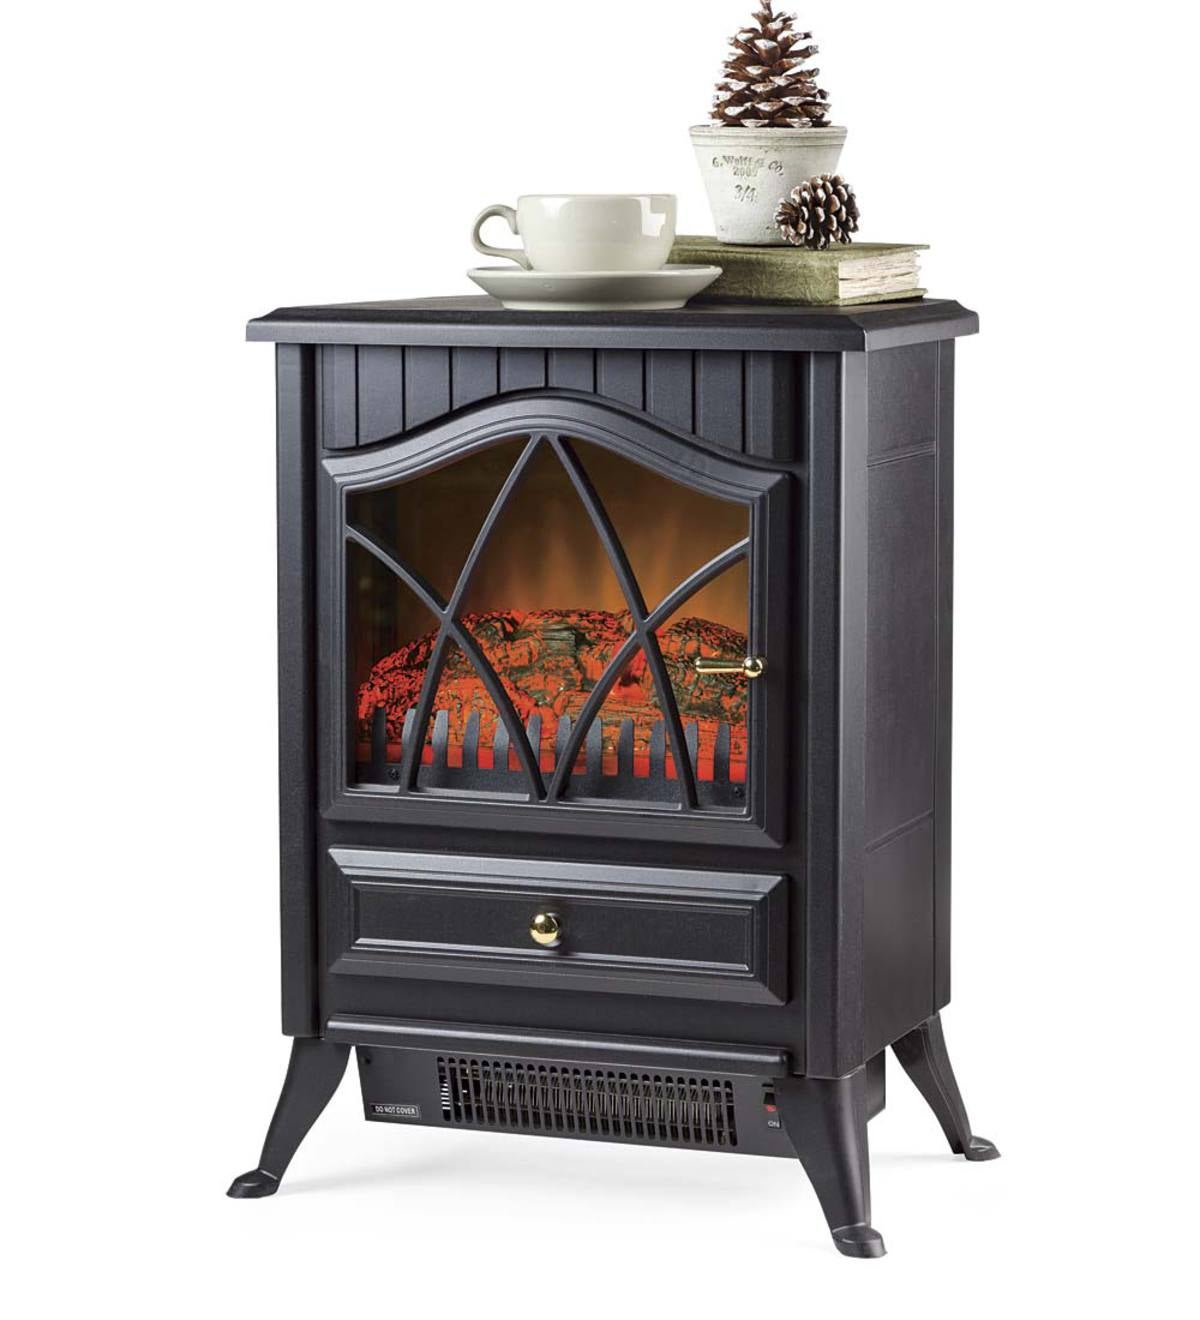 Compact Electric Stove - Black